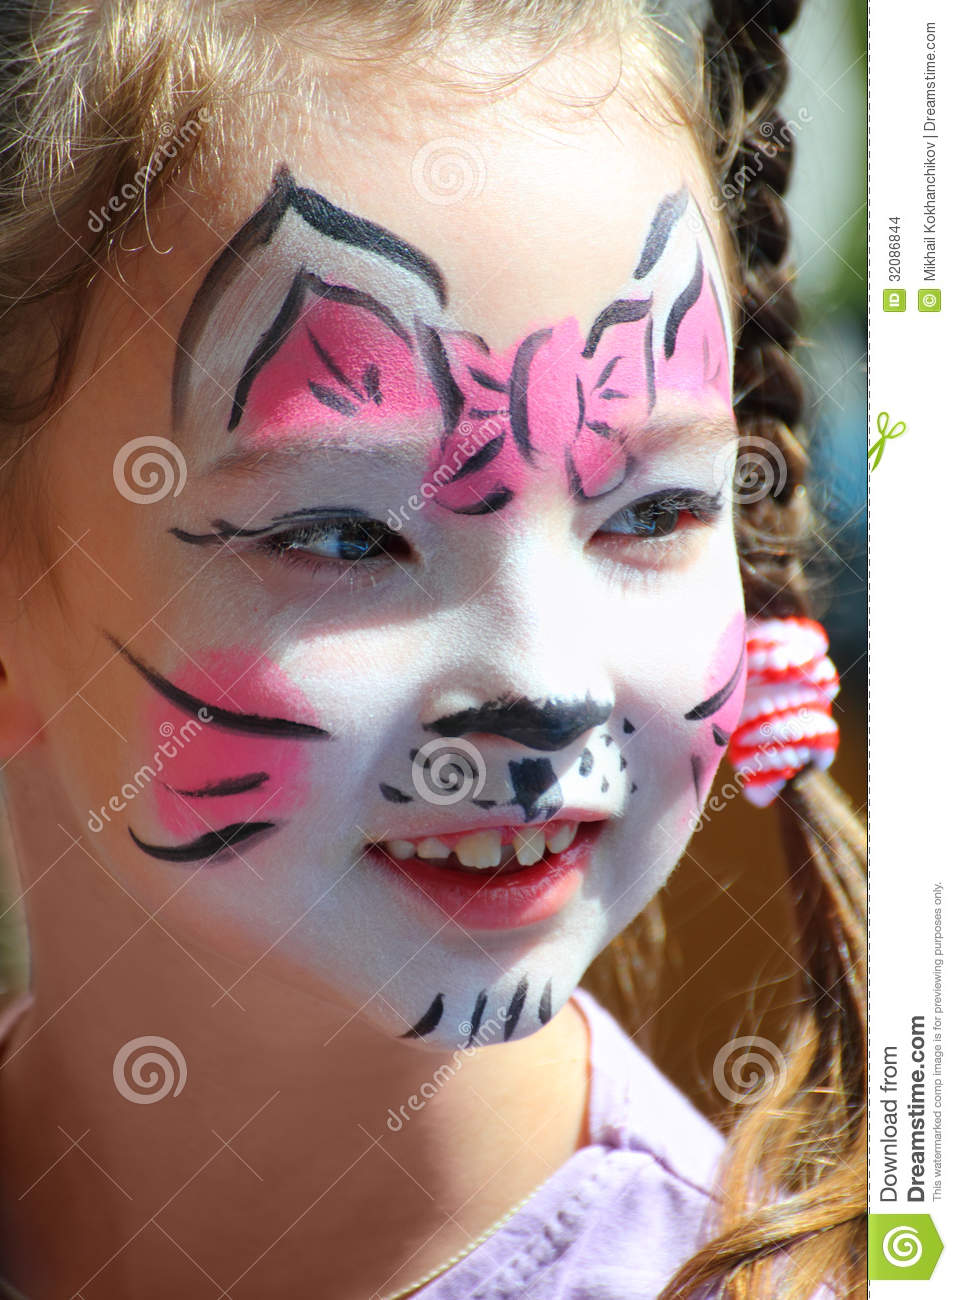 Cute little girl with cat makeup